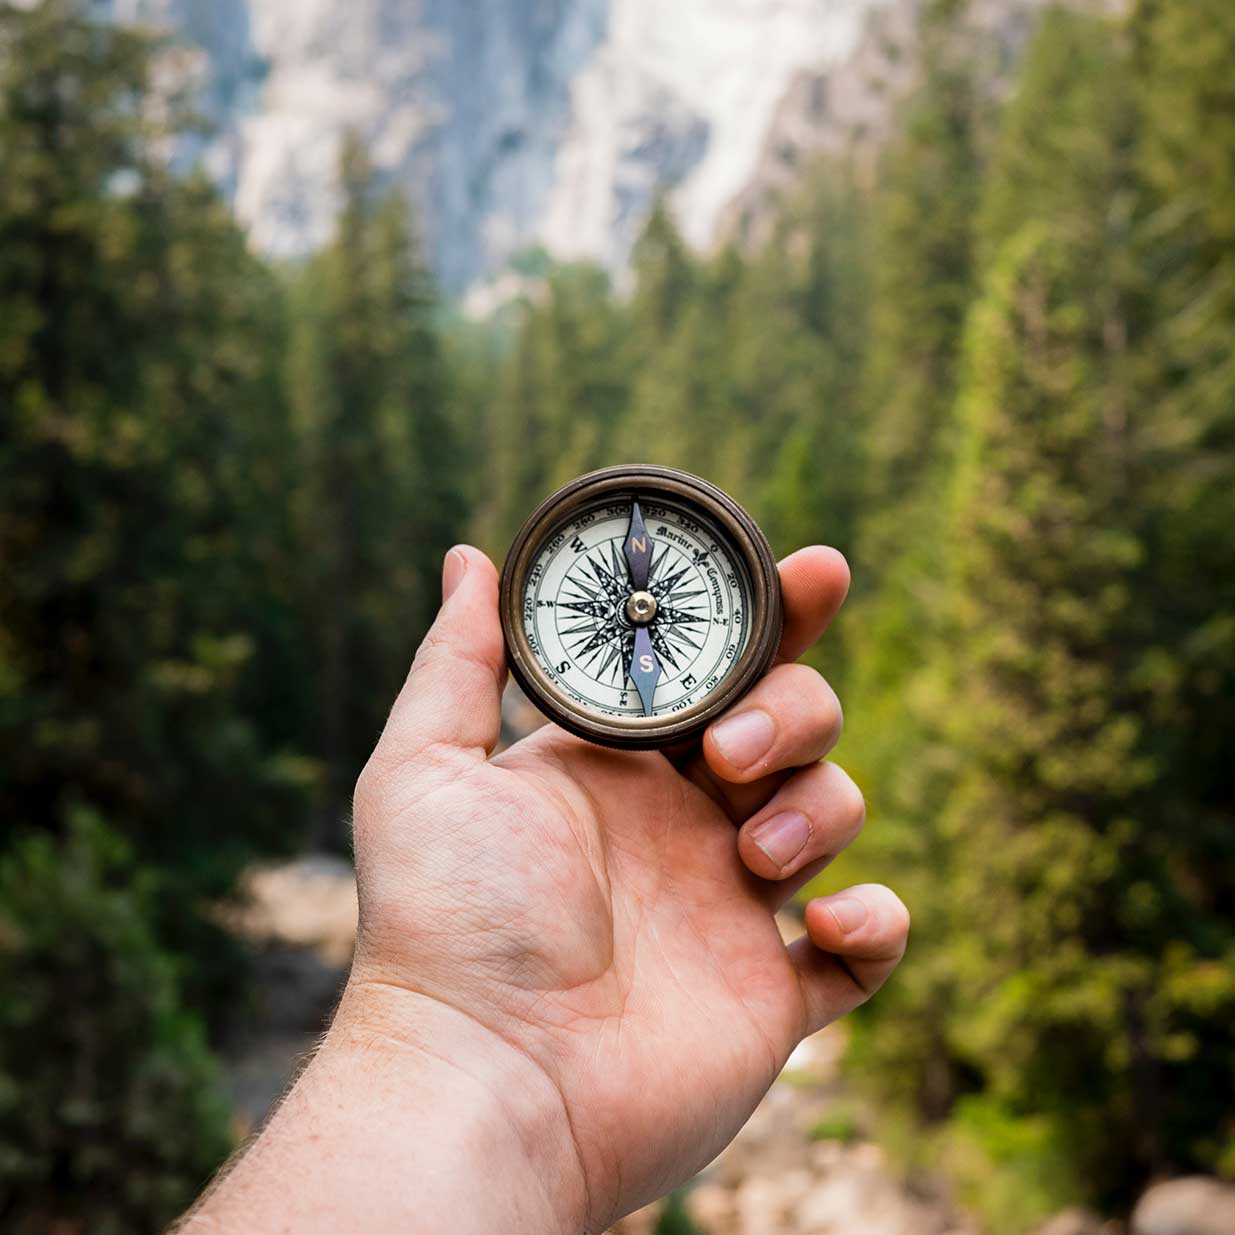 Hand holding a compass in a forest